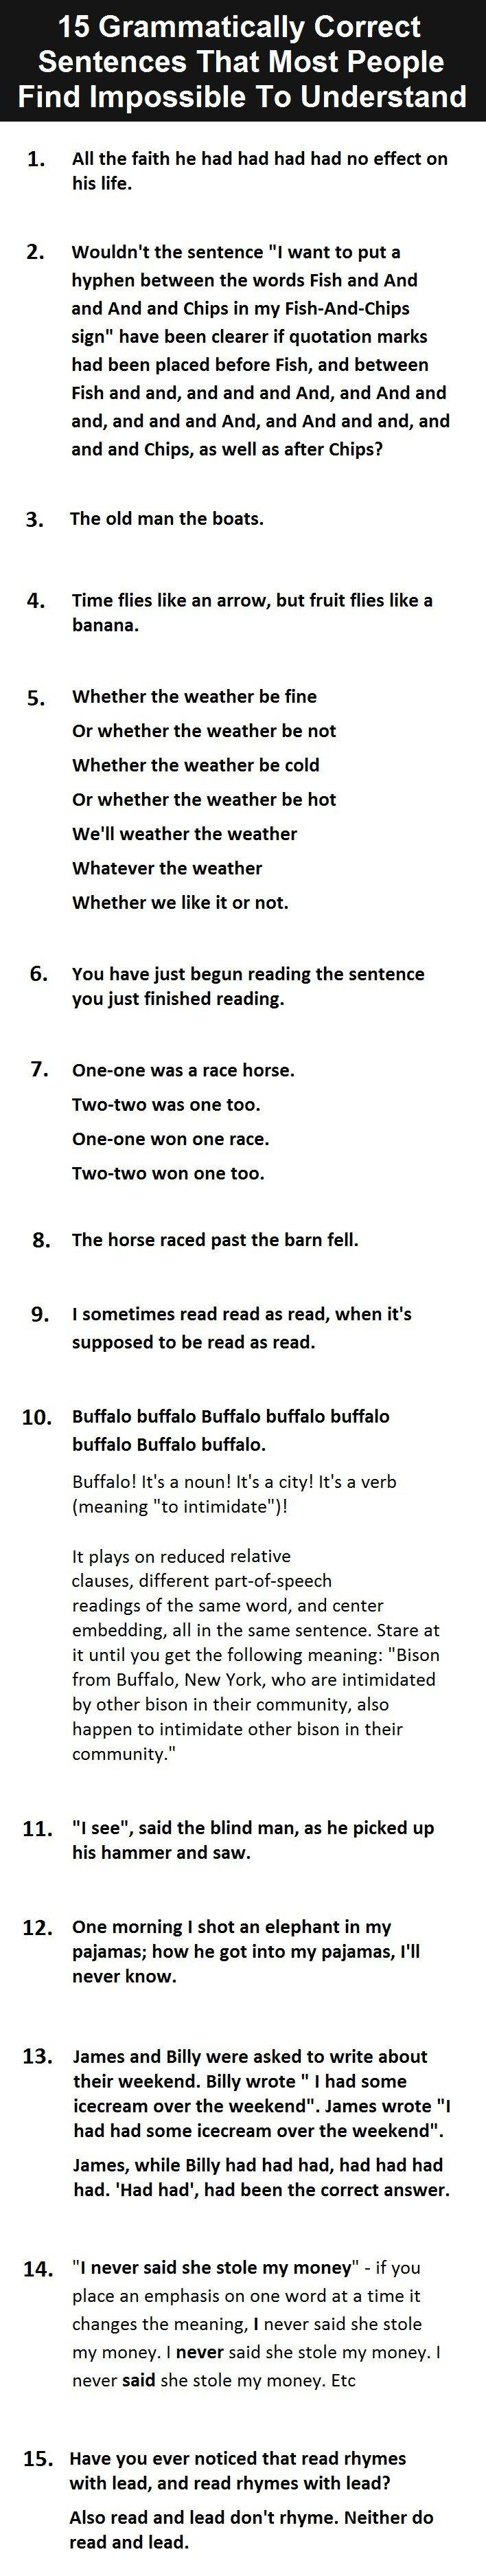 15 grammatically correct sentences that people find impossible to understand.